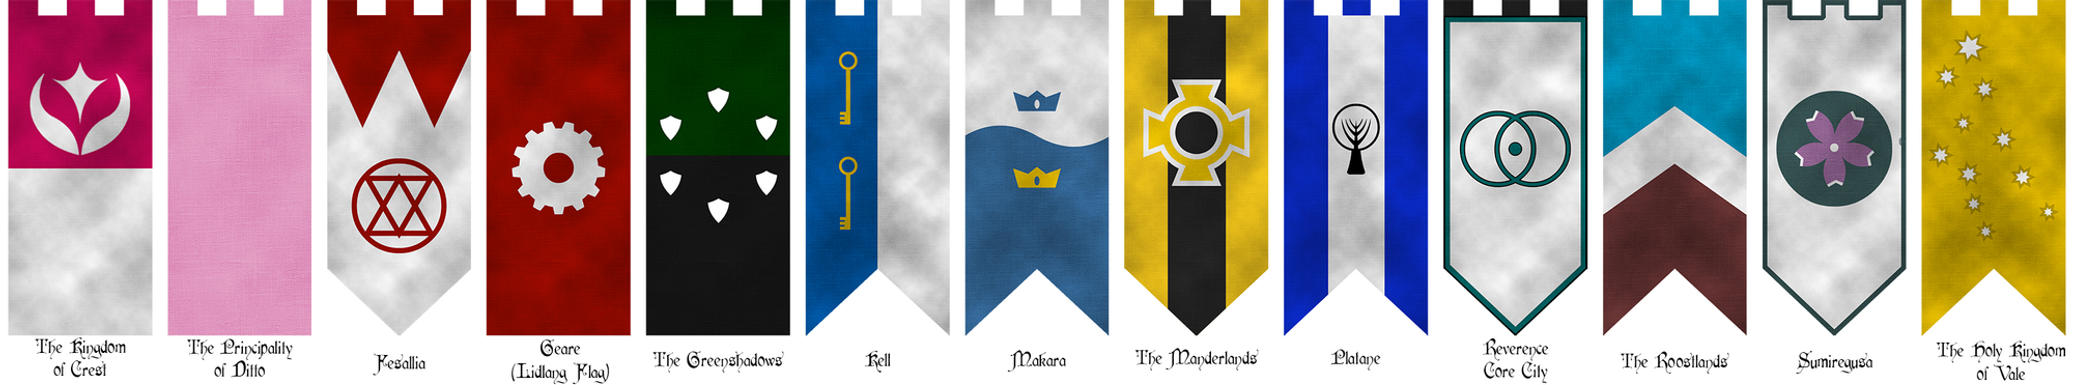 Banners of the Known World, 1115ry by reverseg